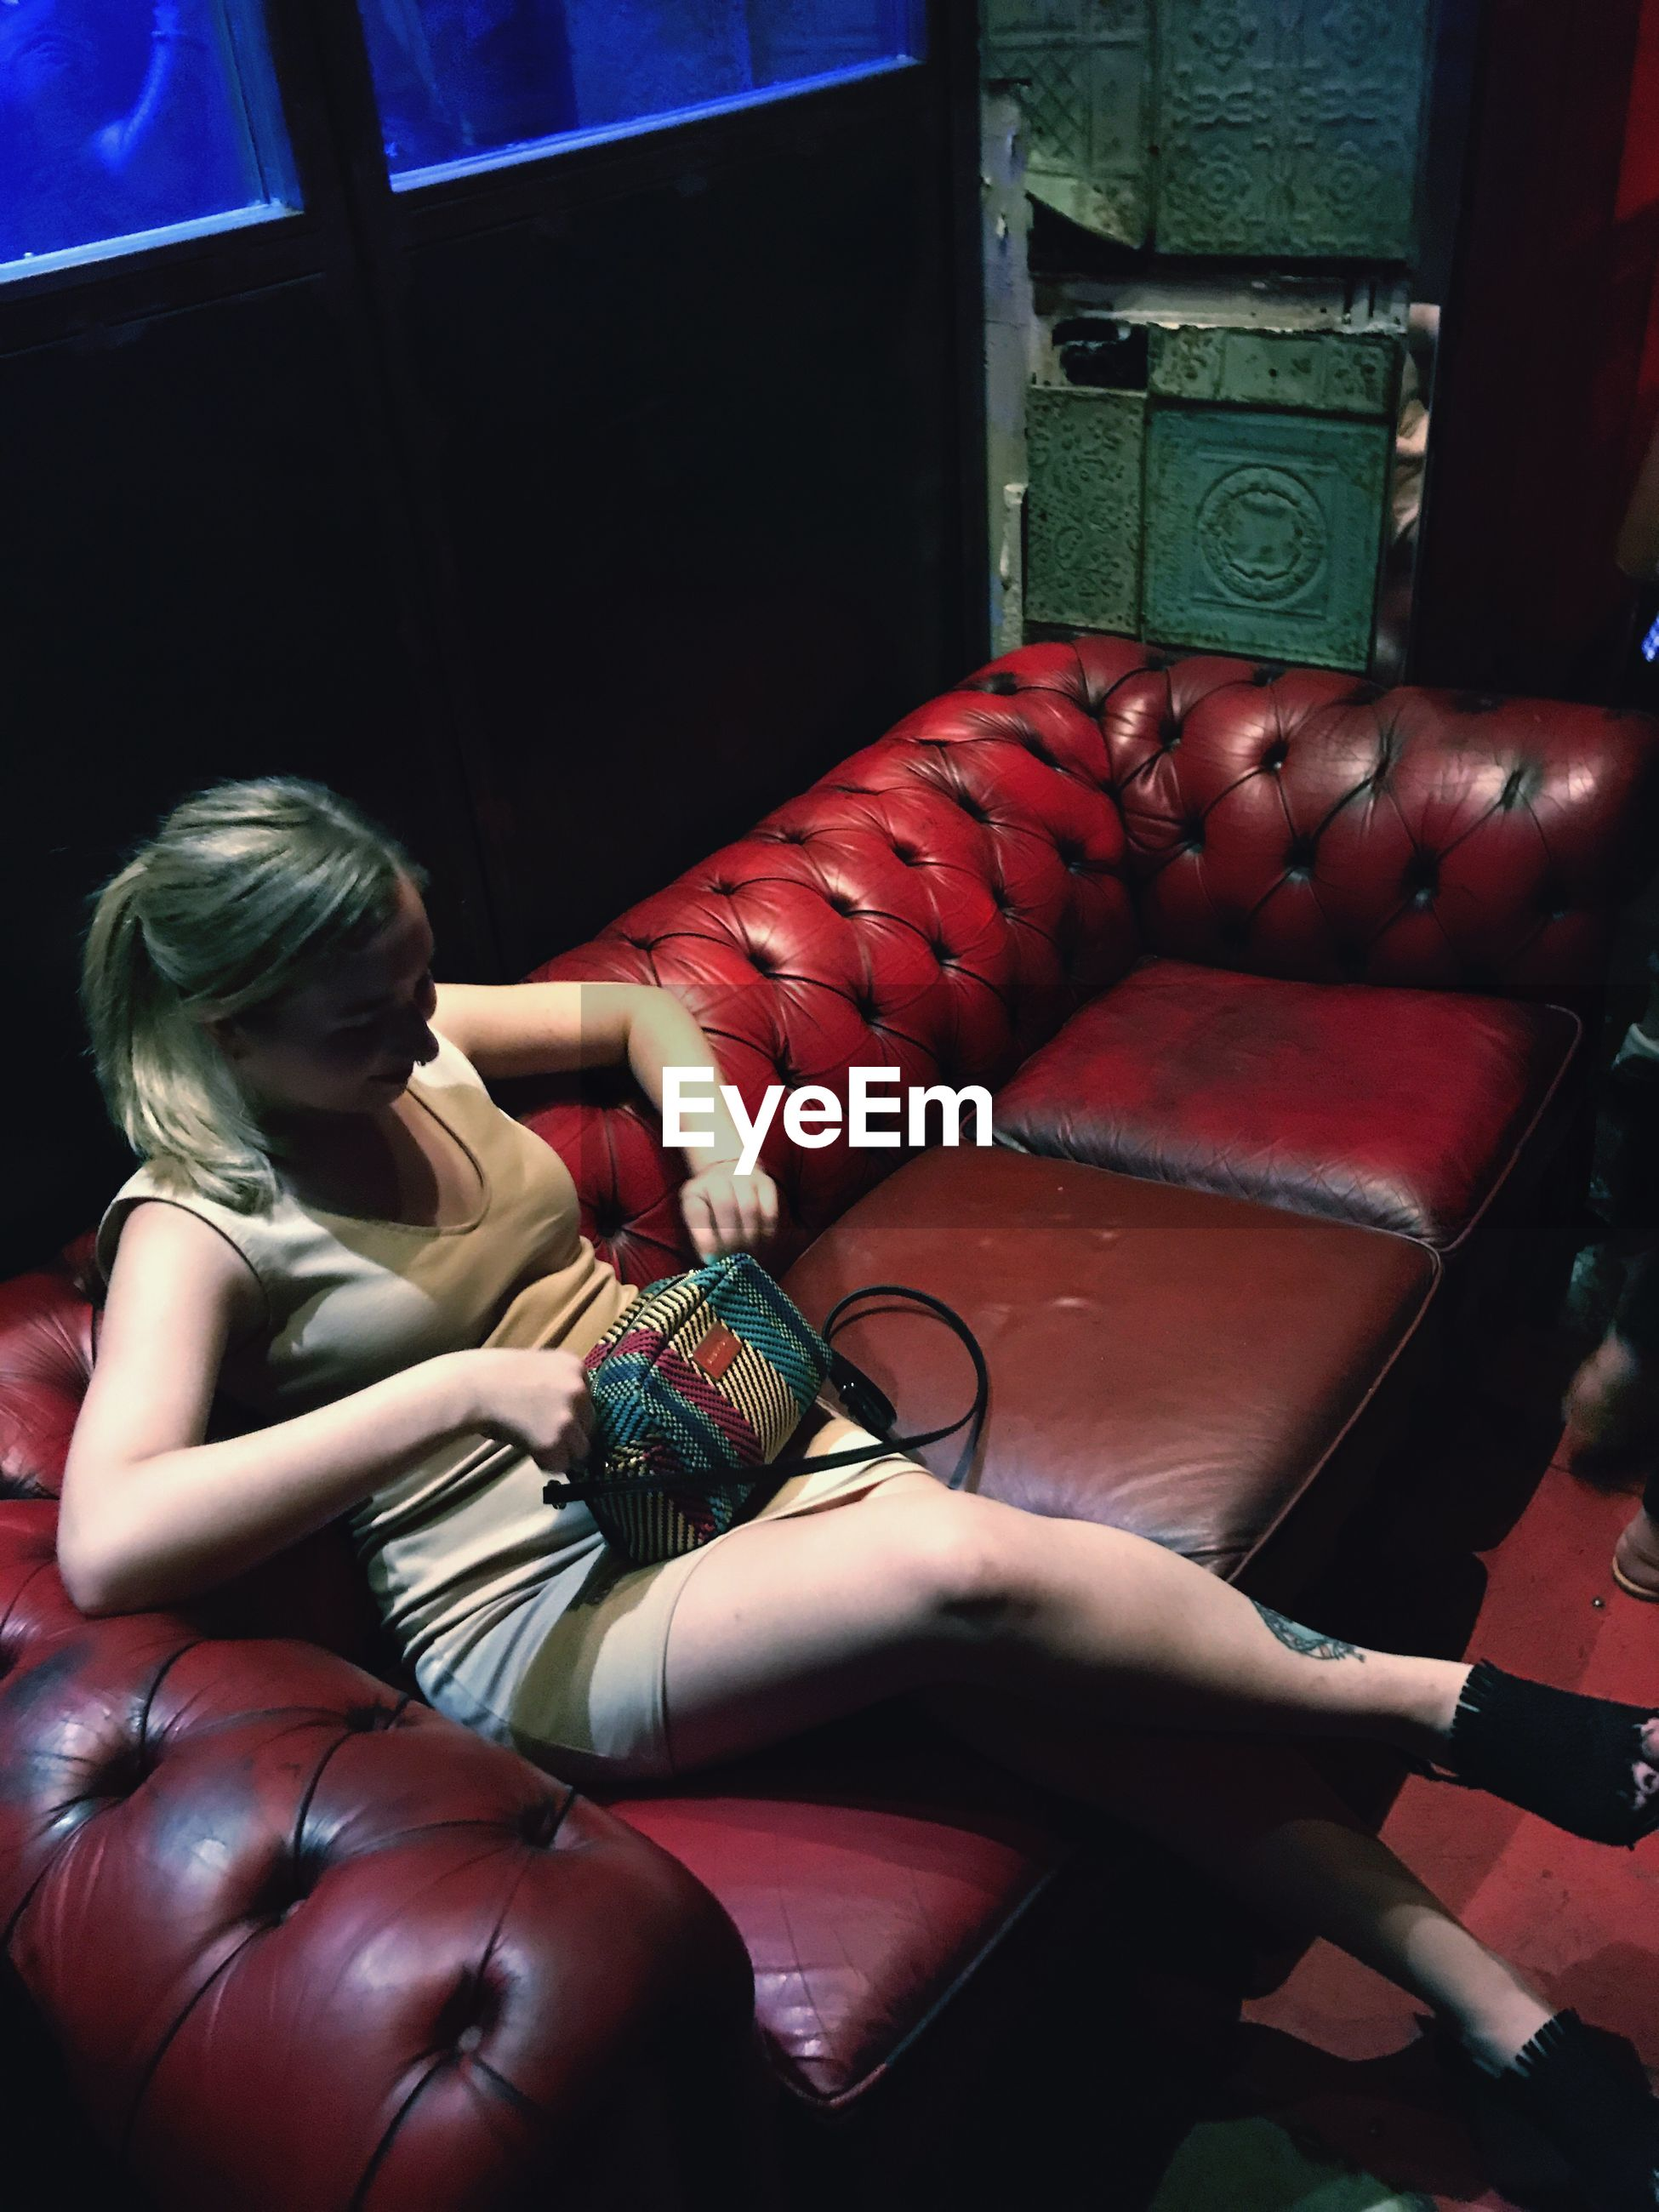 High angle view of young woman holding purse while sitting on couch at nightclub